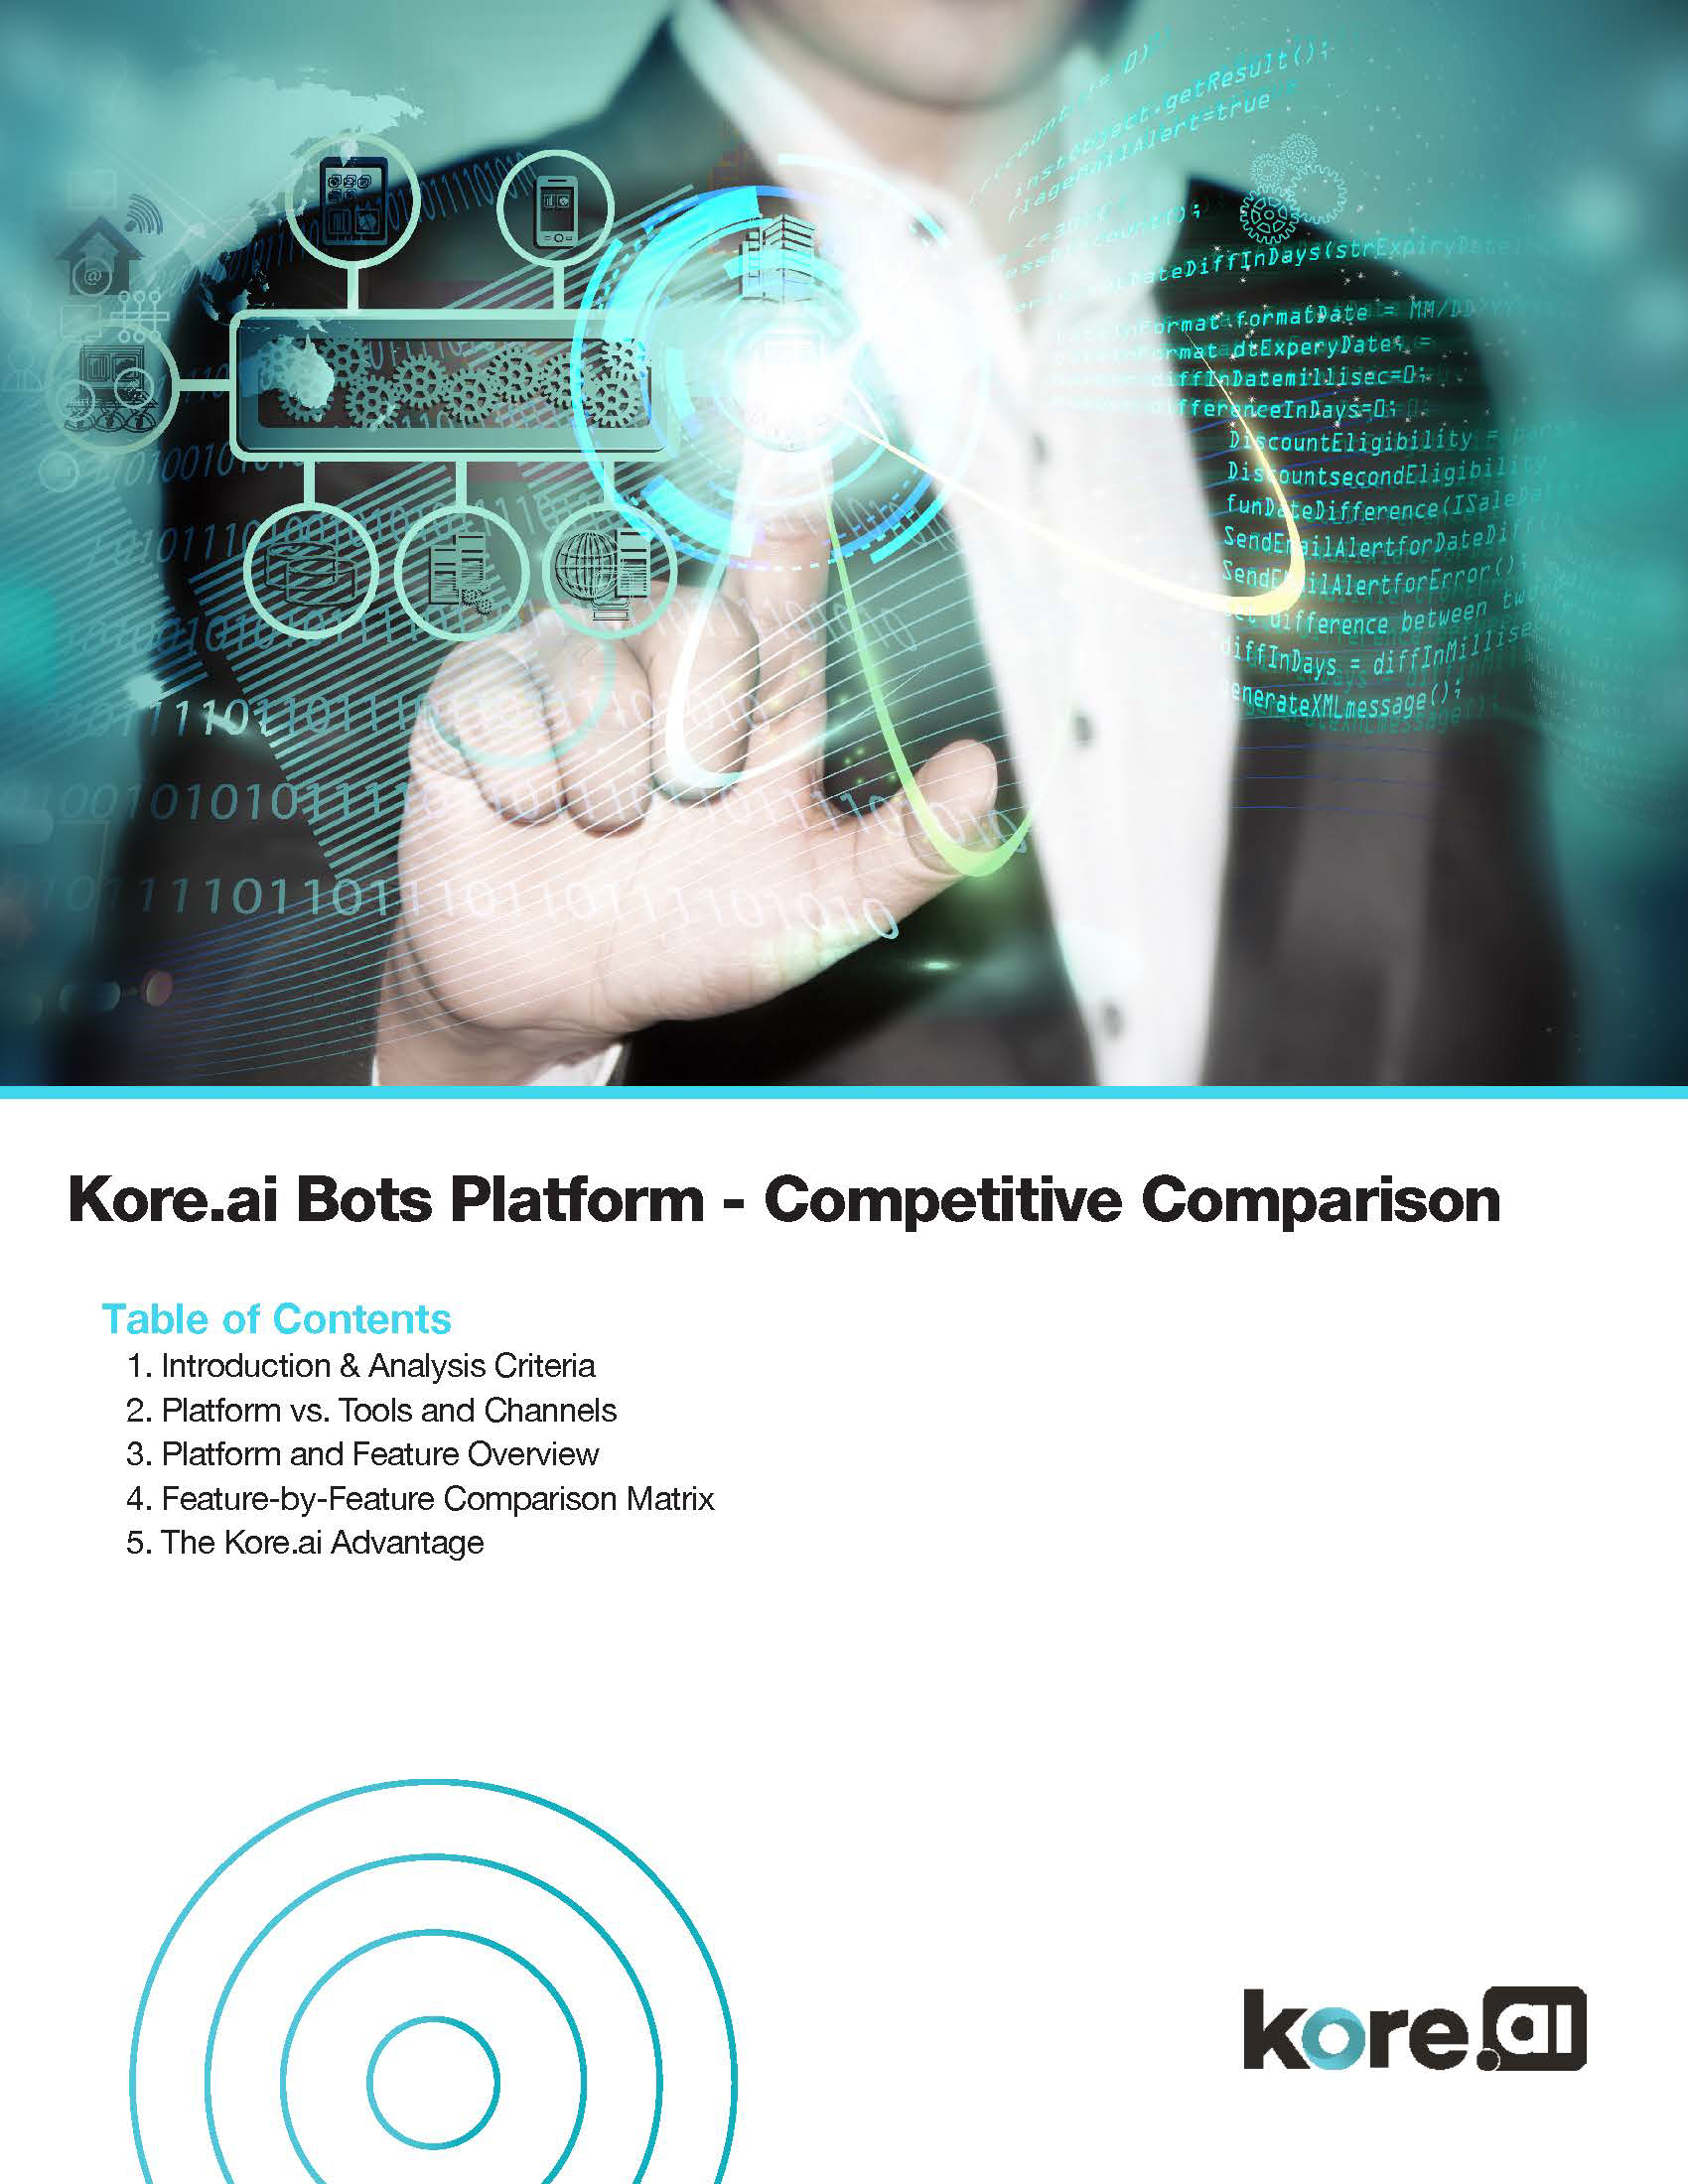 Kore.ai Bots Platform Competitive Comparison